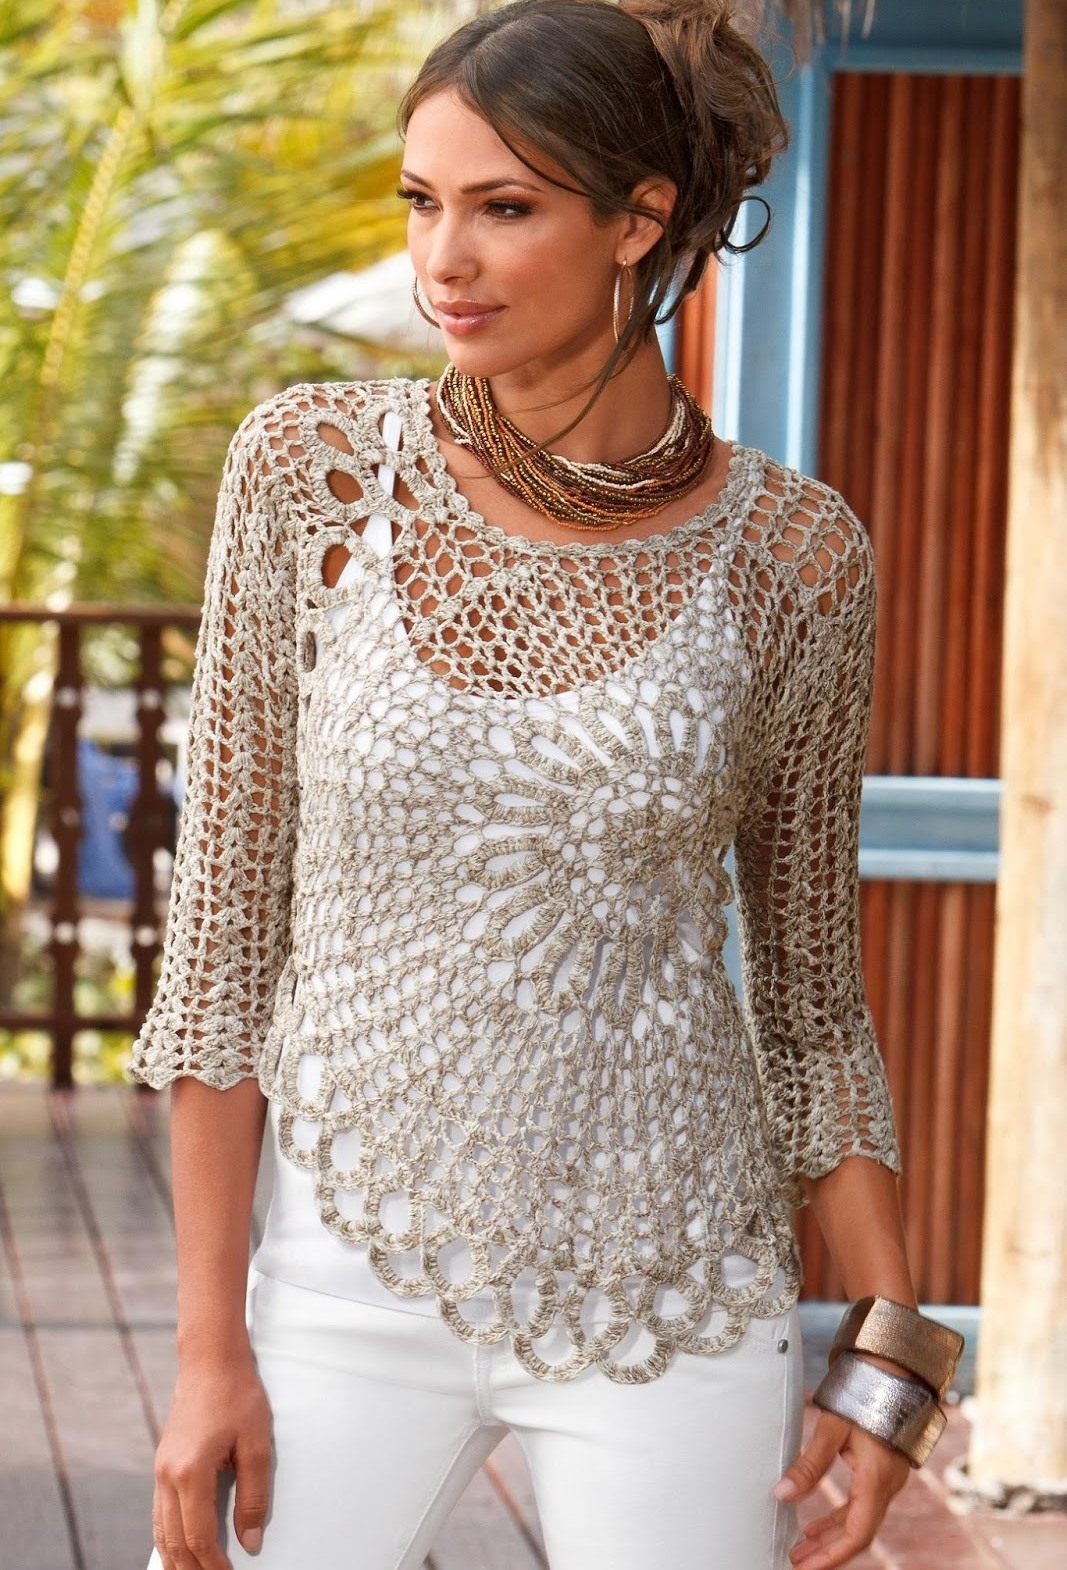 Free Crochet Patterns For Women s Shell Tops : Jersey con Dibujo Central Patron - Patrones Crochet